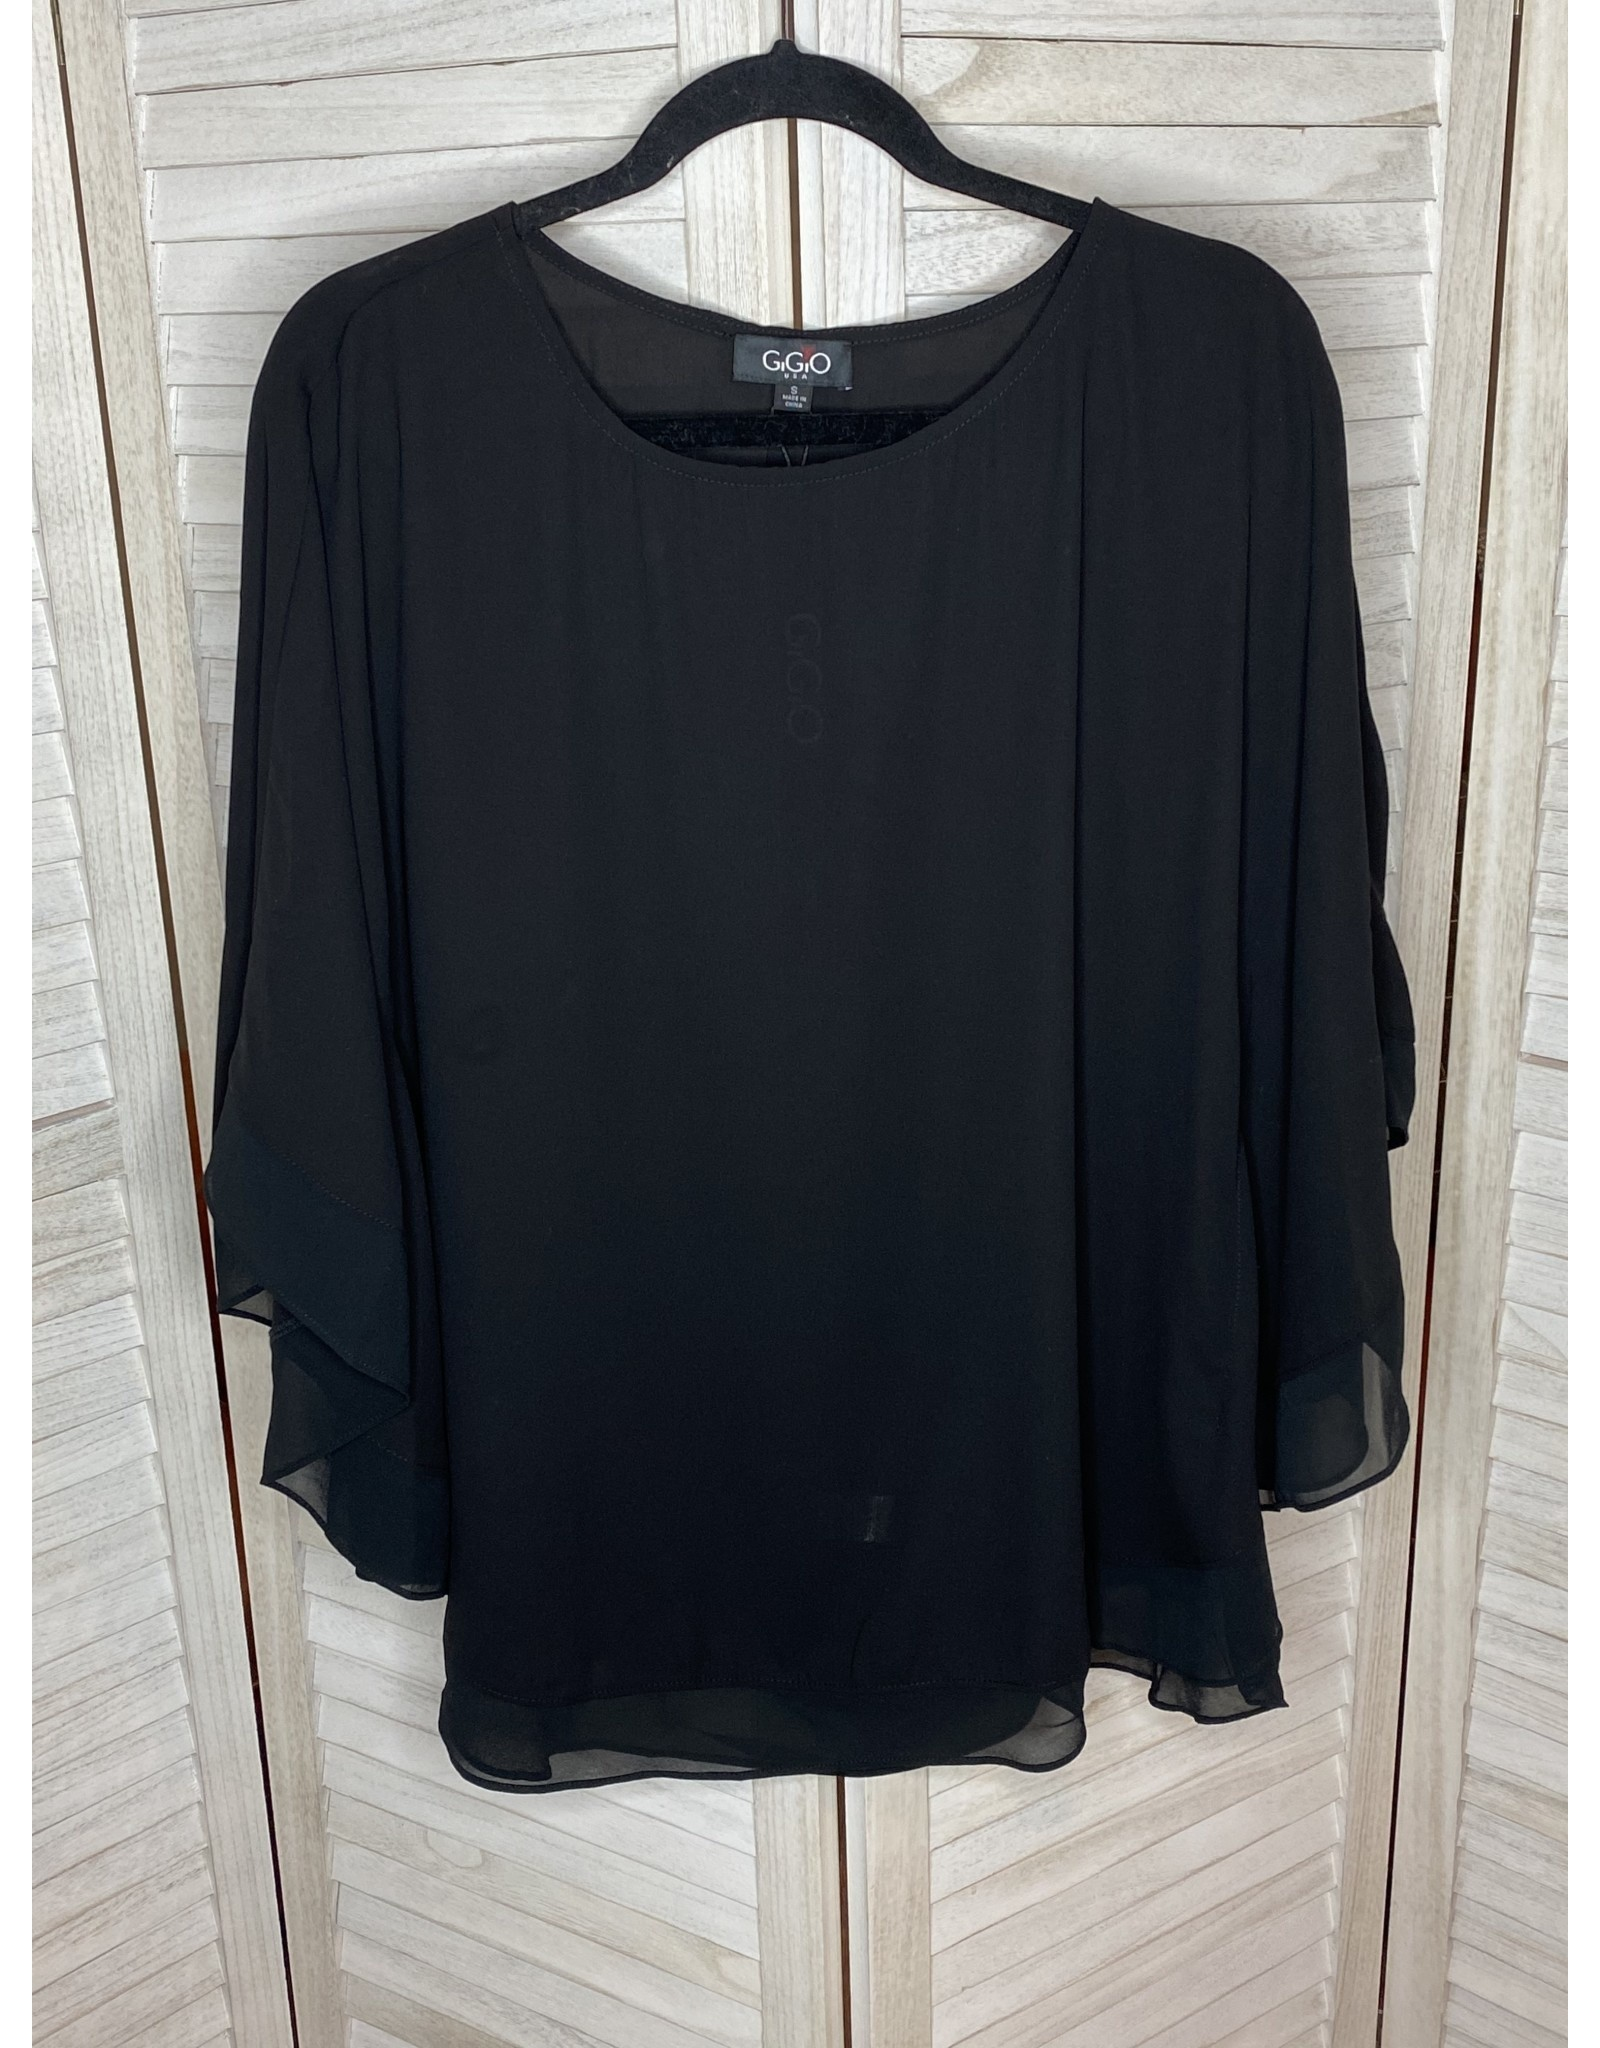 Gigio Sheer Flowing Cape Top